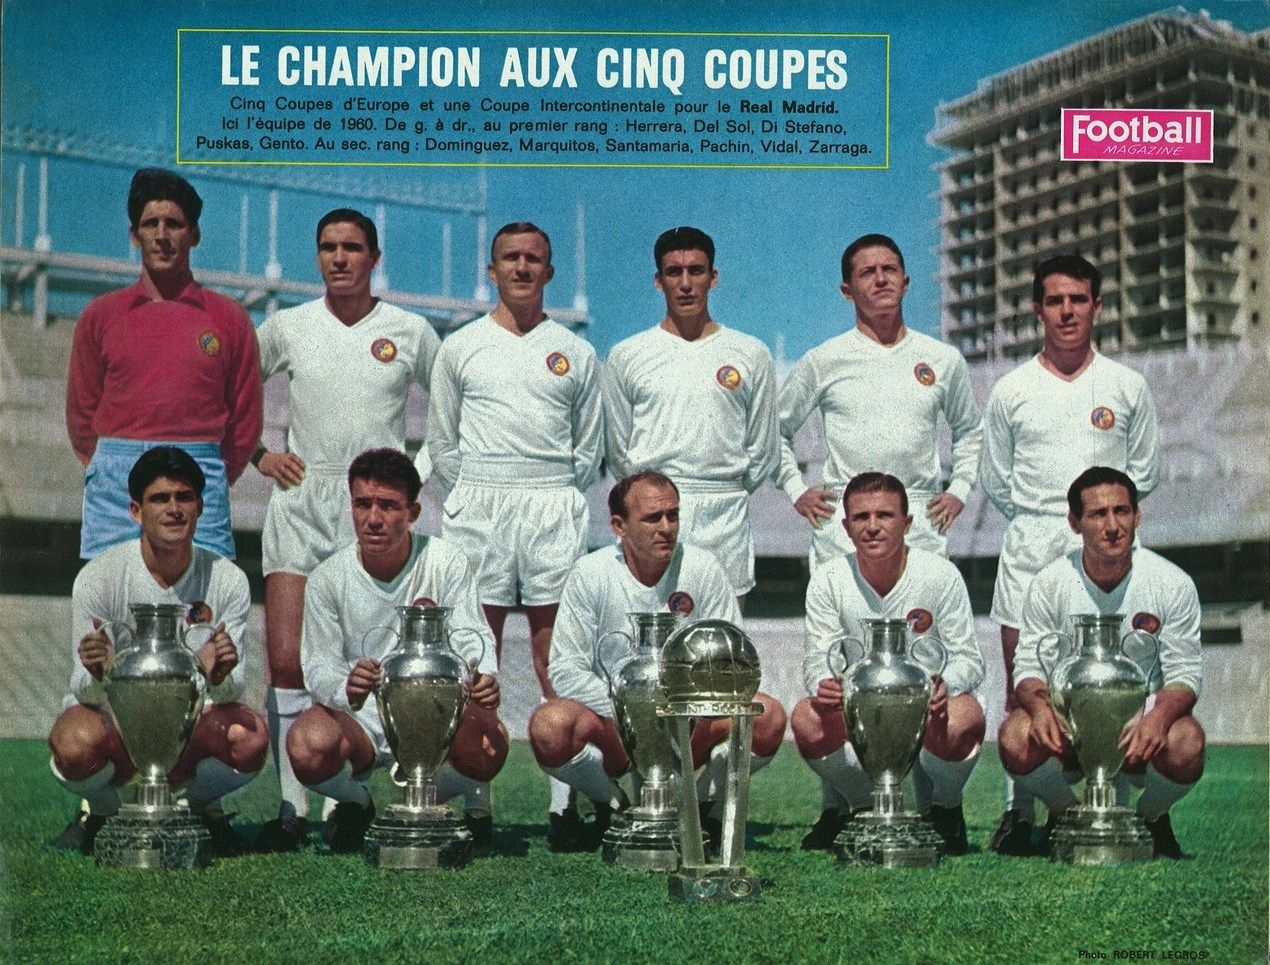 1960 1961 r al madrid a remport le cinqui me coupe d - Football coupe d europe des clubs champions ...